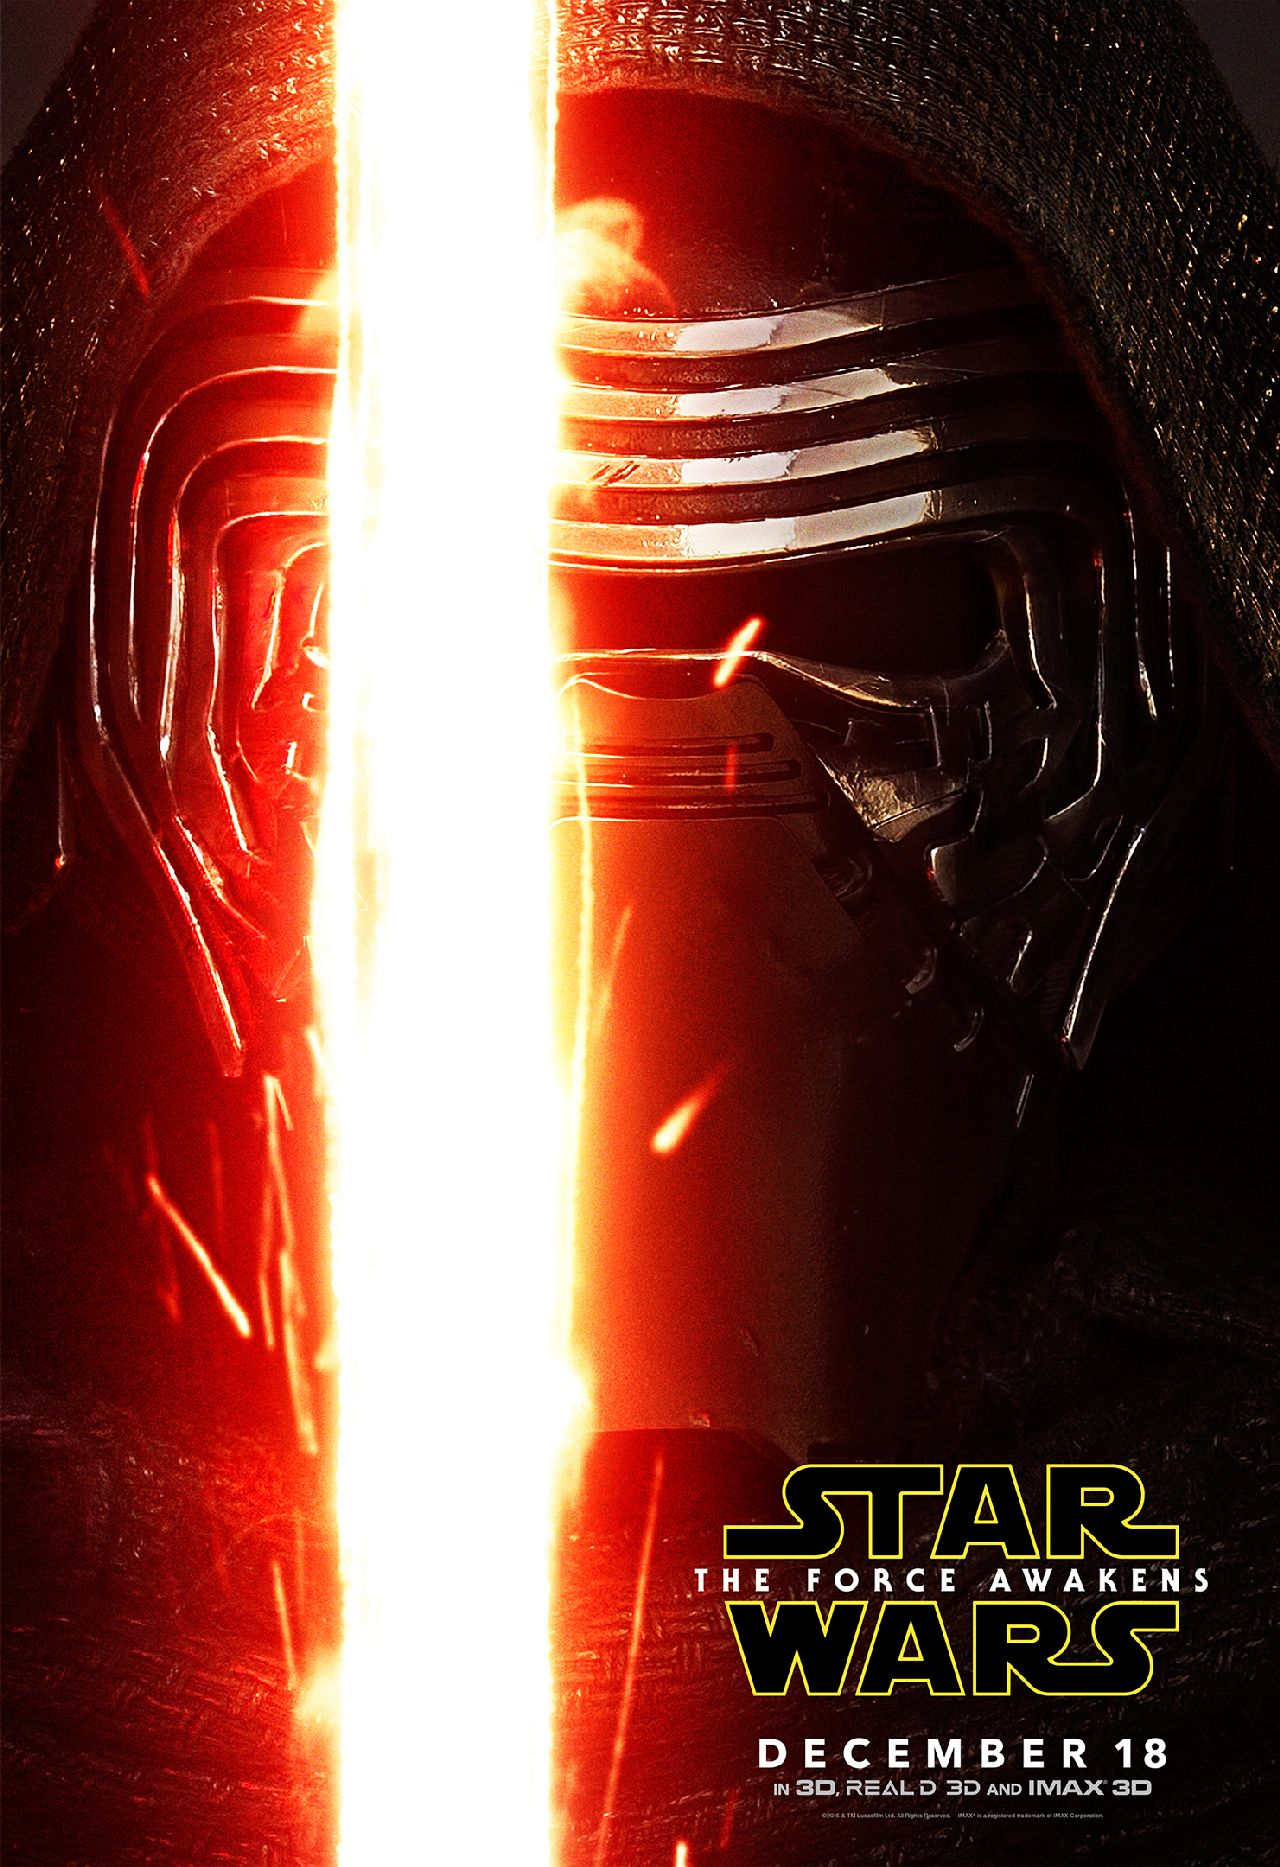 Star Wars: The Force Awakens Character Posters Feature Heroes Old And New